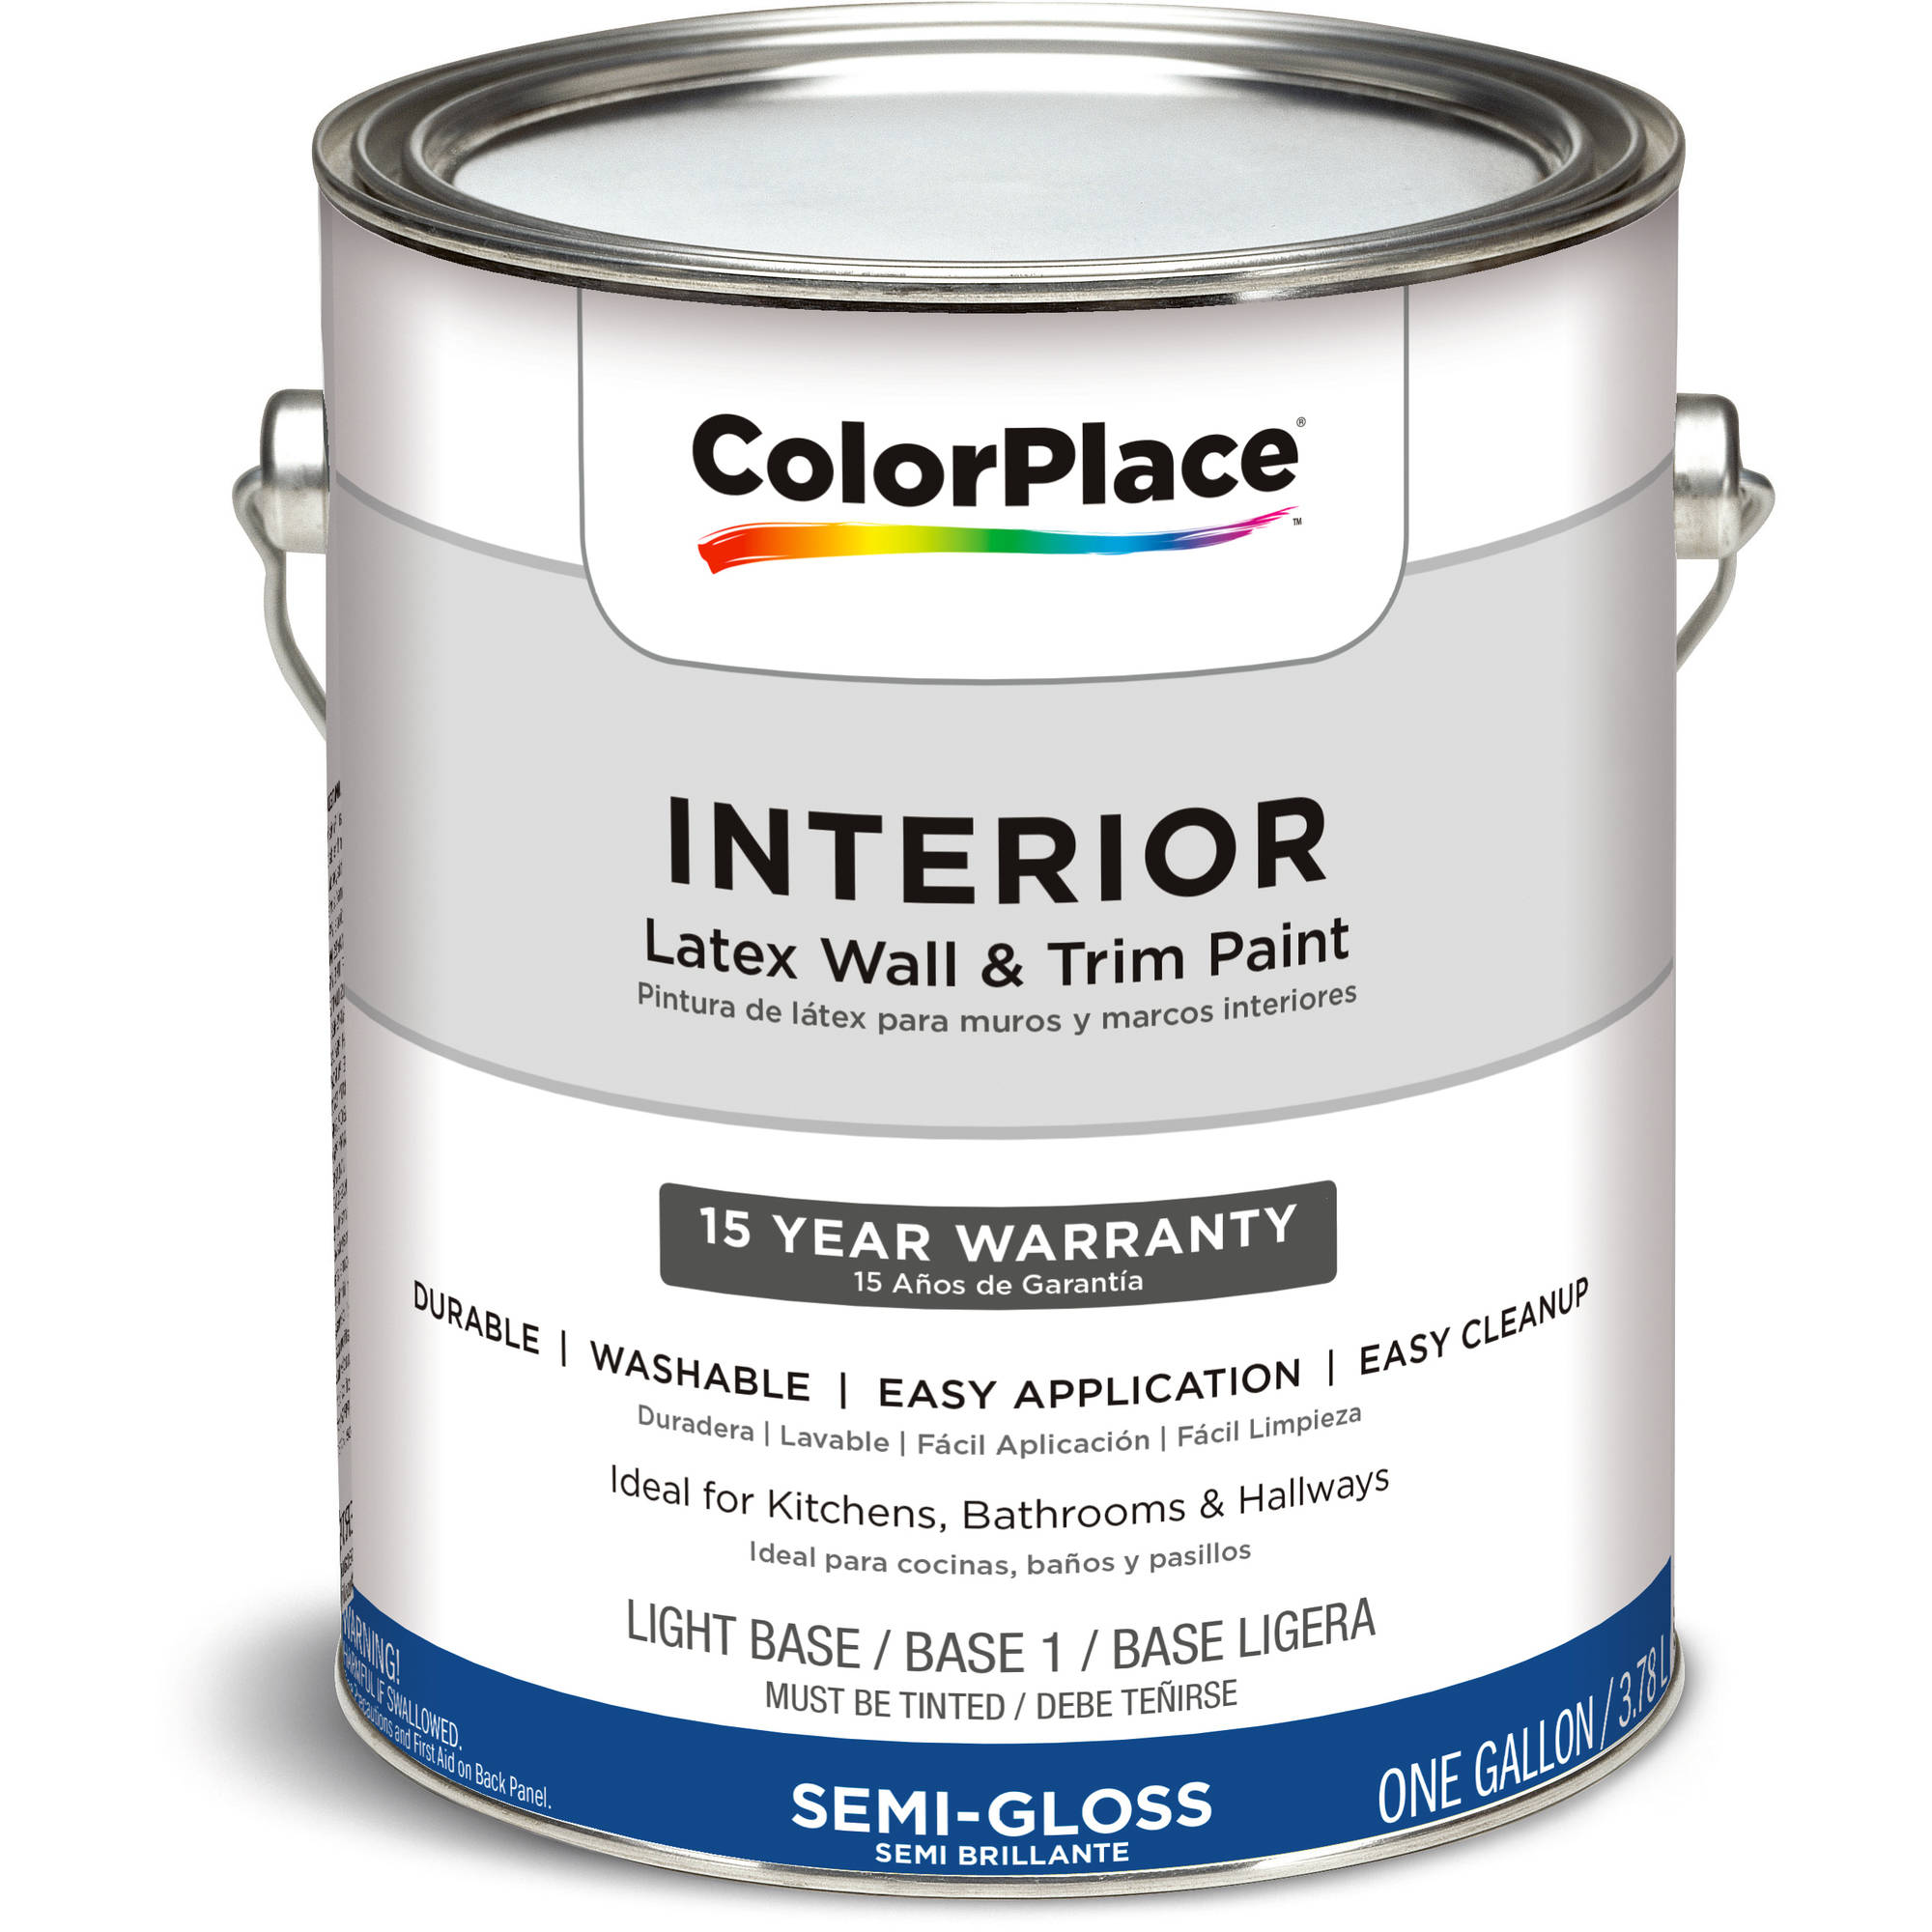 ColorPlace Interior Paint Semi-Gloss LB, 1 gal